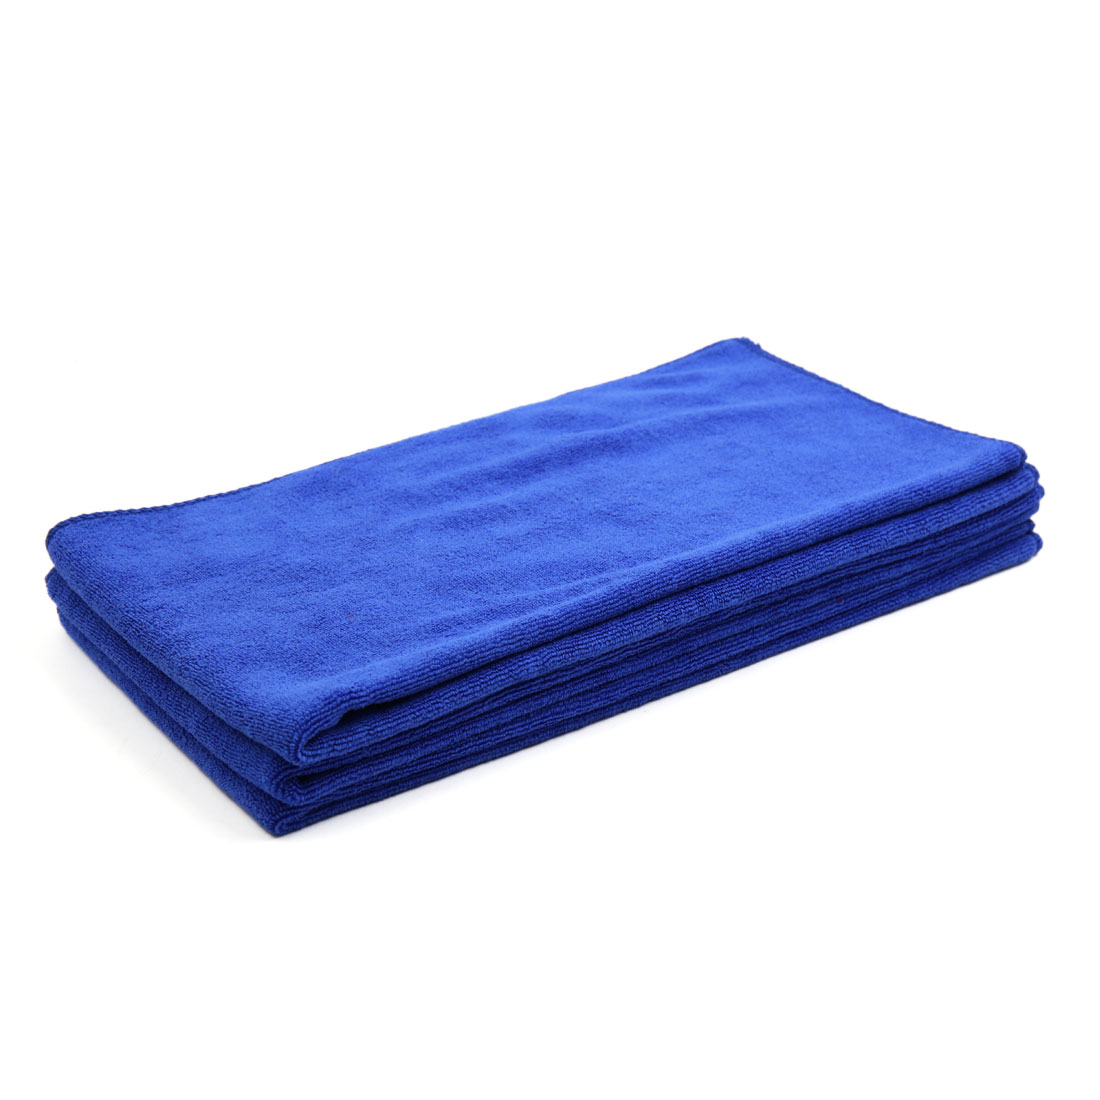 3 Pcs High Absorbing Microfiber Fabric, Polyester, Polymide Car Clean Cloth Towel No-scratched for Car Body - image 3 of 3